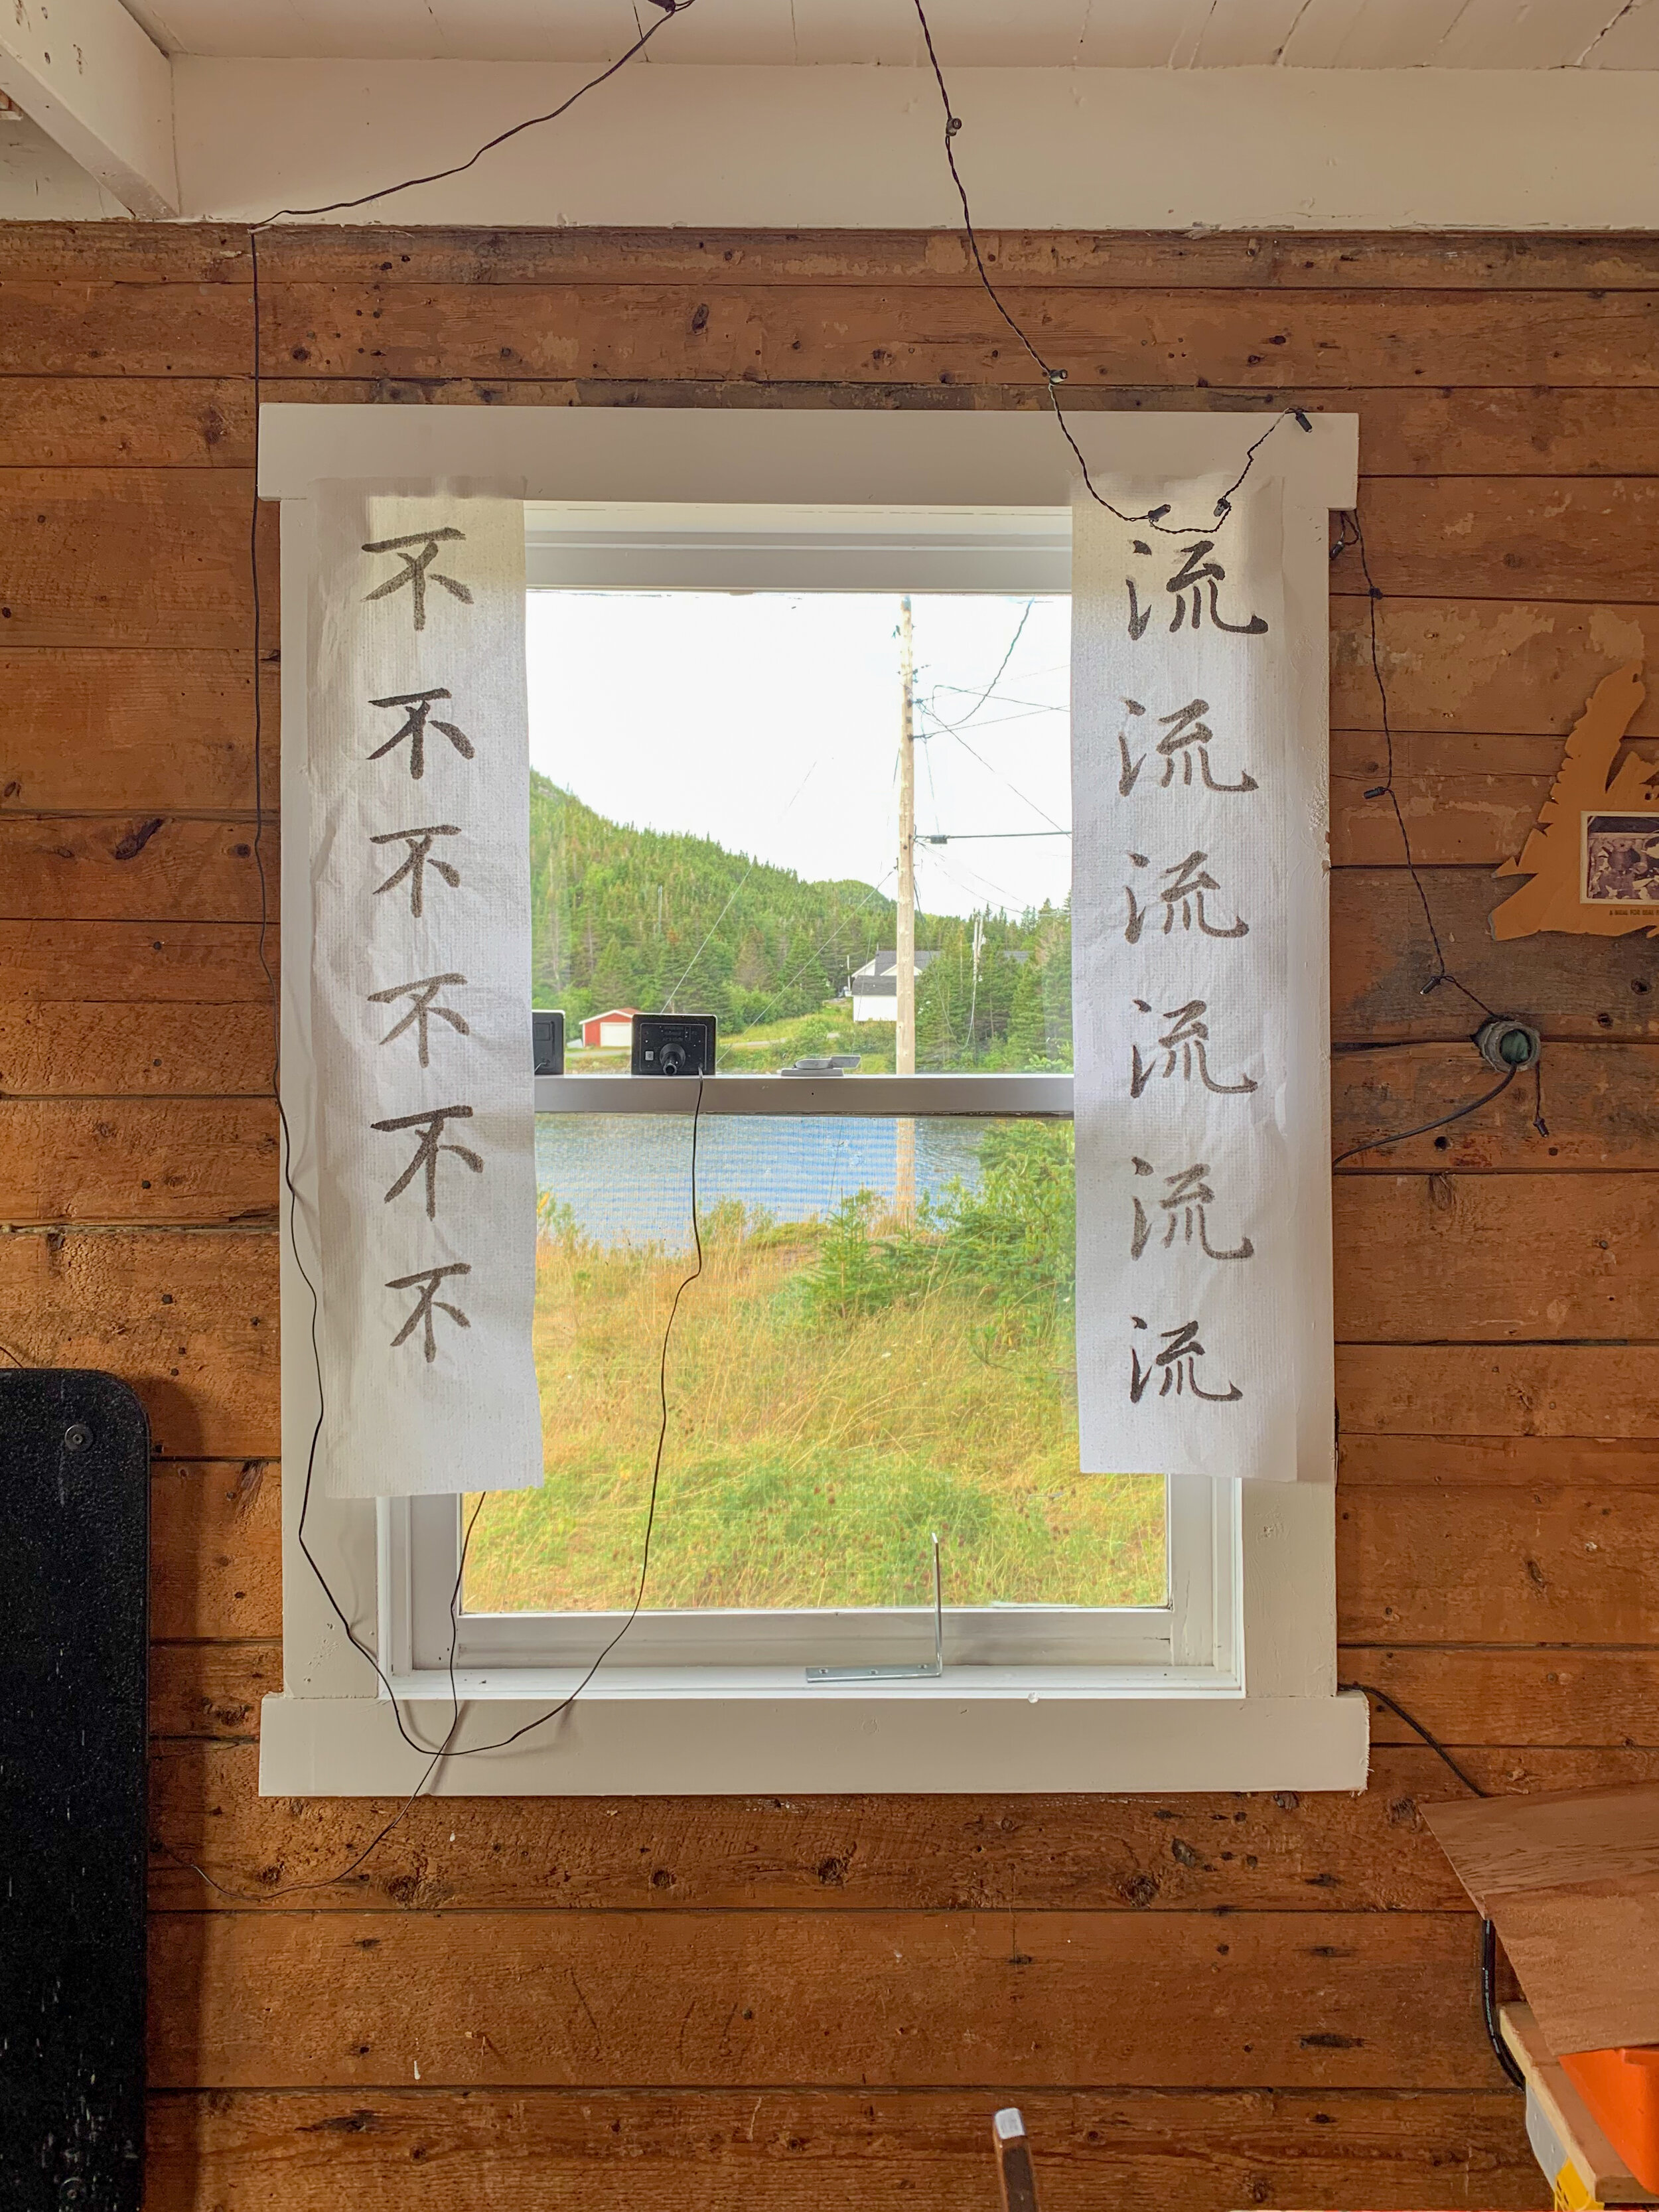 West-facing window in Living Room. While I photographed, my wife continued practicing her Chinese Calligraphy.